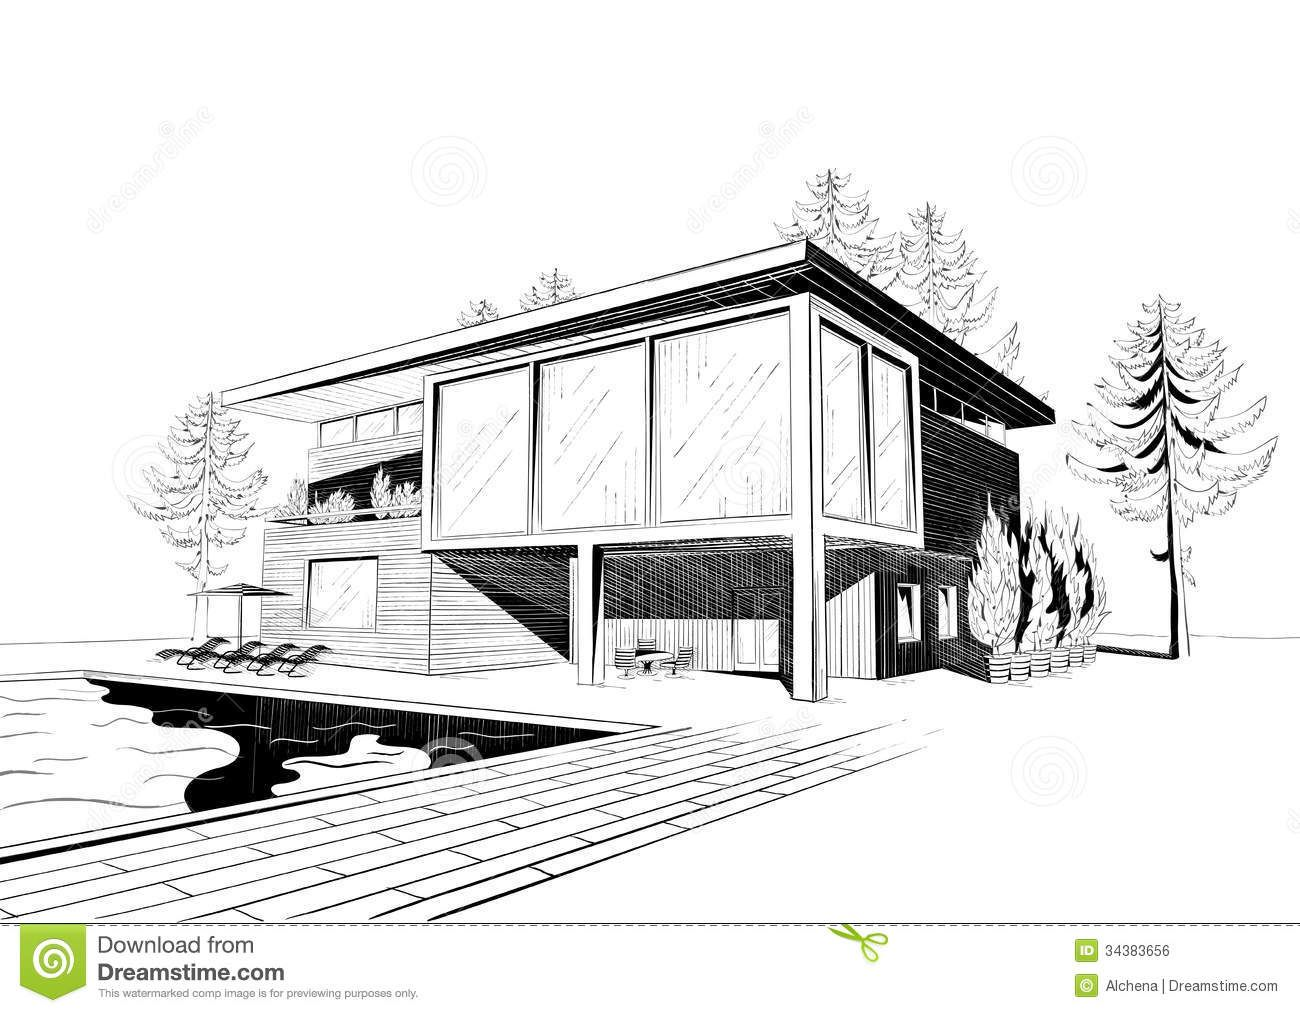 Excellent modern home architecture sketches on home design for Architecture house drawing